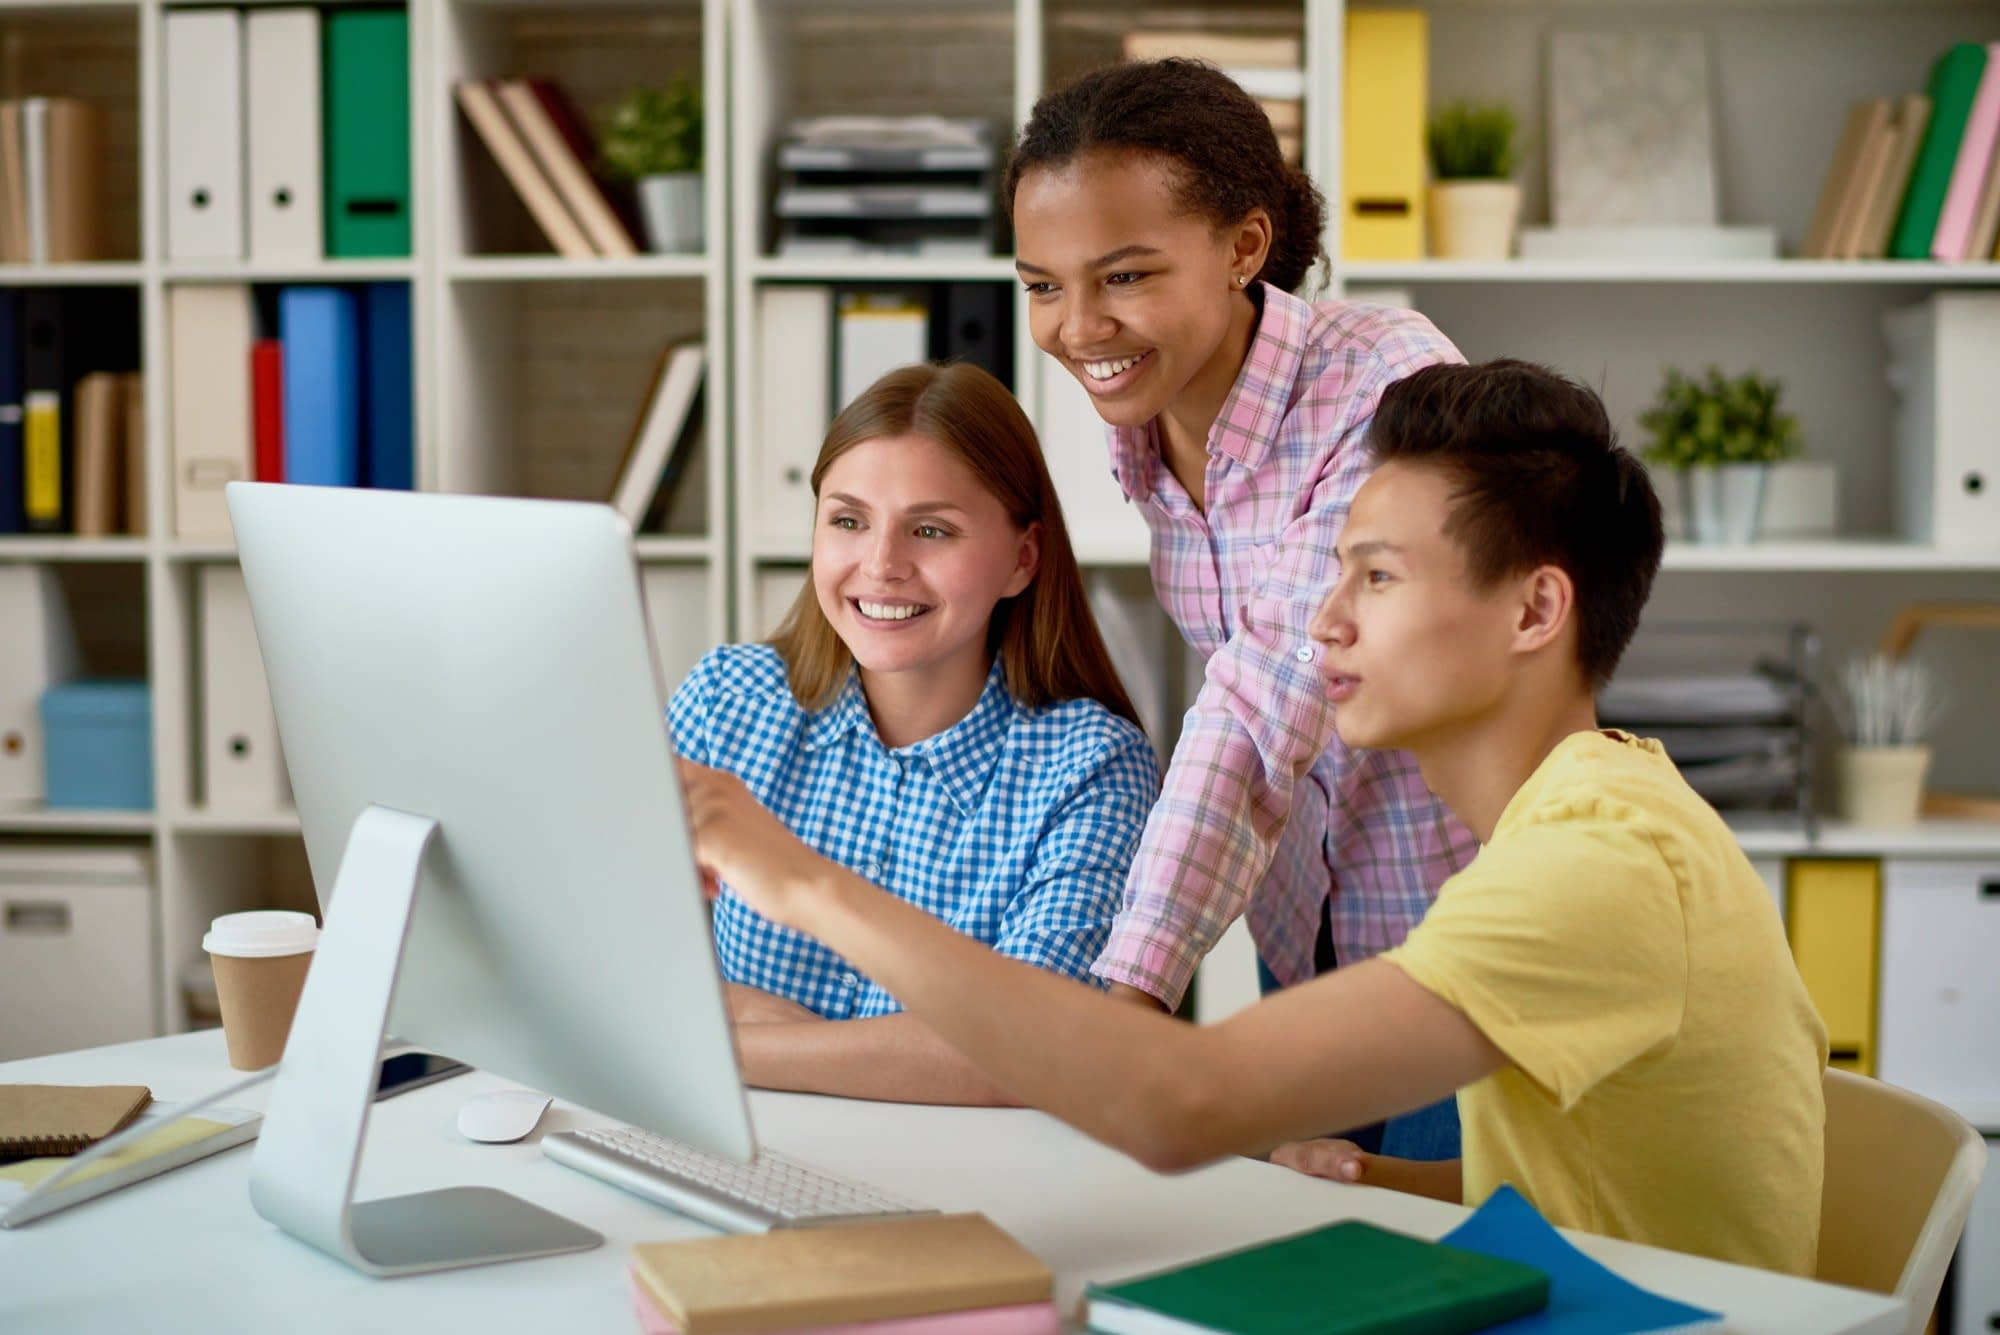 Smiling Students Working with Computer